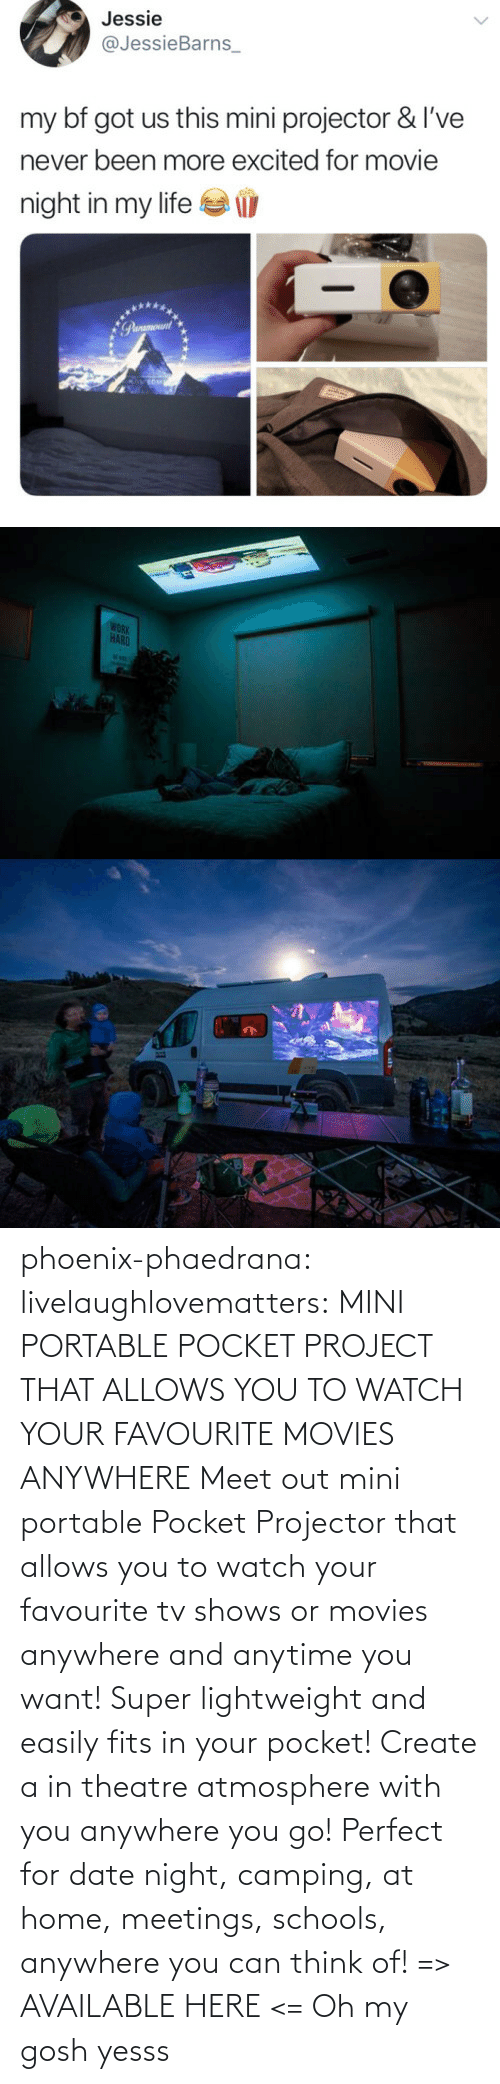 Theatre: phoenix-phaedrana: livelaughlovematters:  MINI PORTABLE POCKET PROJECT THAT ALLOWS YOU TO WATCH YOUR FAVOURITE MOVIES ANYWHERE Meet out mini portable Pocket Projector that allows you to watch your favourite tv shows or movies anywhere and anytime you want! Super lightweight and easily fits in your pocket! Create a in theatre atmosphere with you anywhere you go! Perfect for date night, camping, at home, meetings, schools, anywhere you can think of! => AVAILABLE HERE <=  Oh my gosh yesss